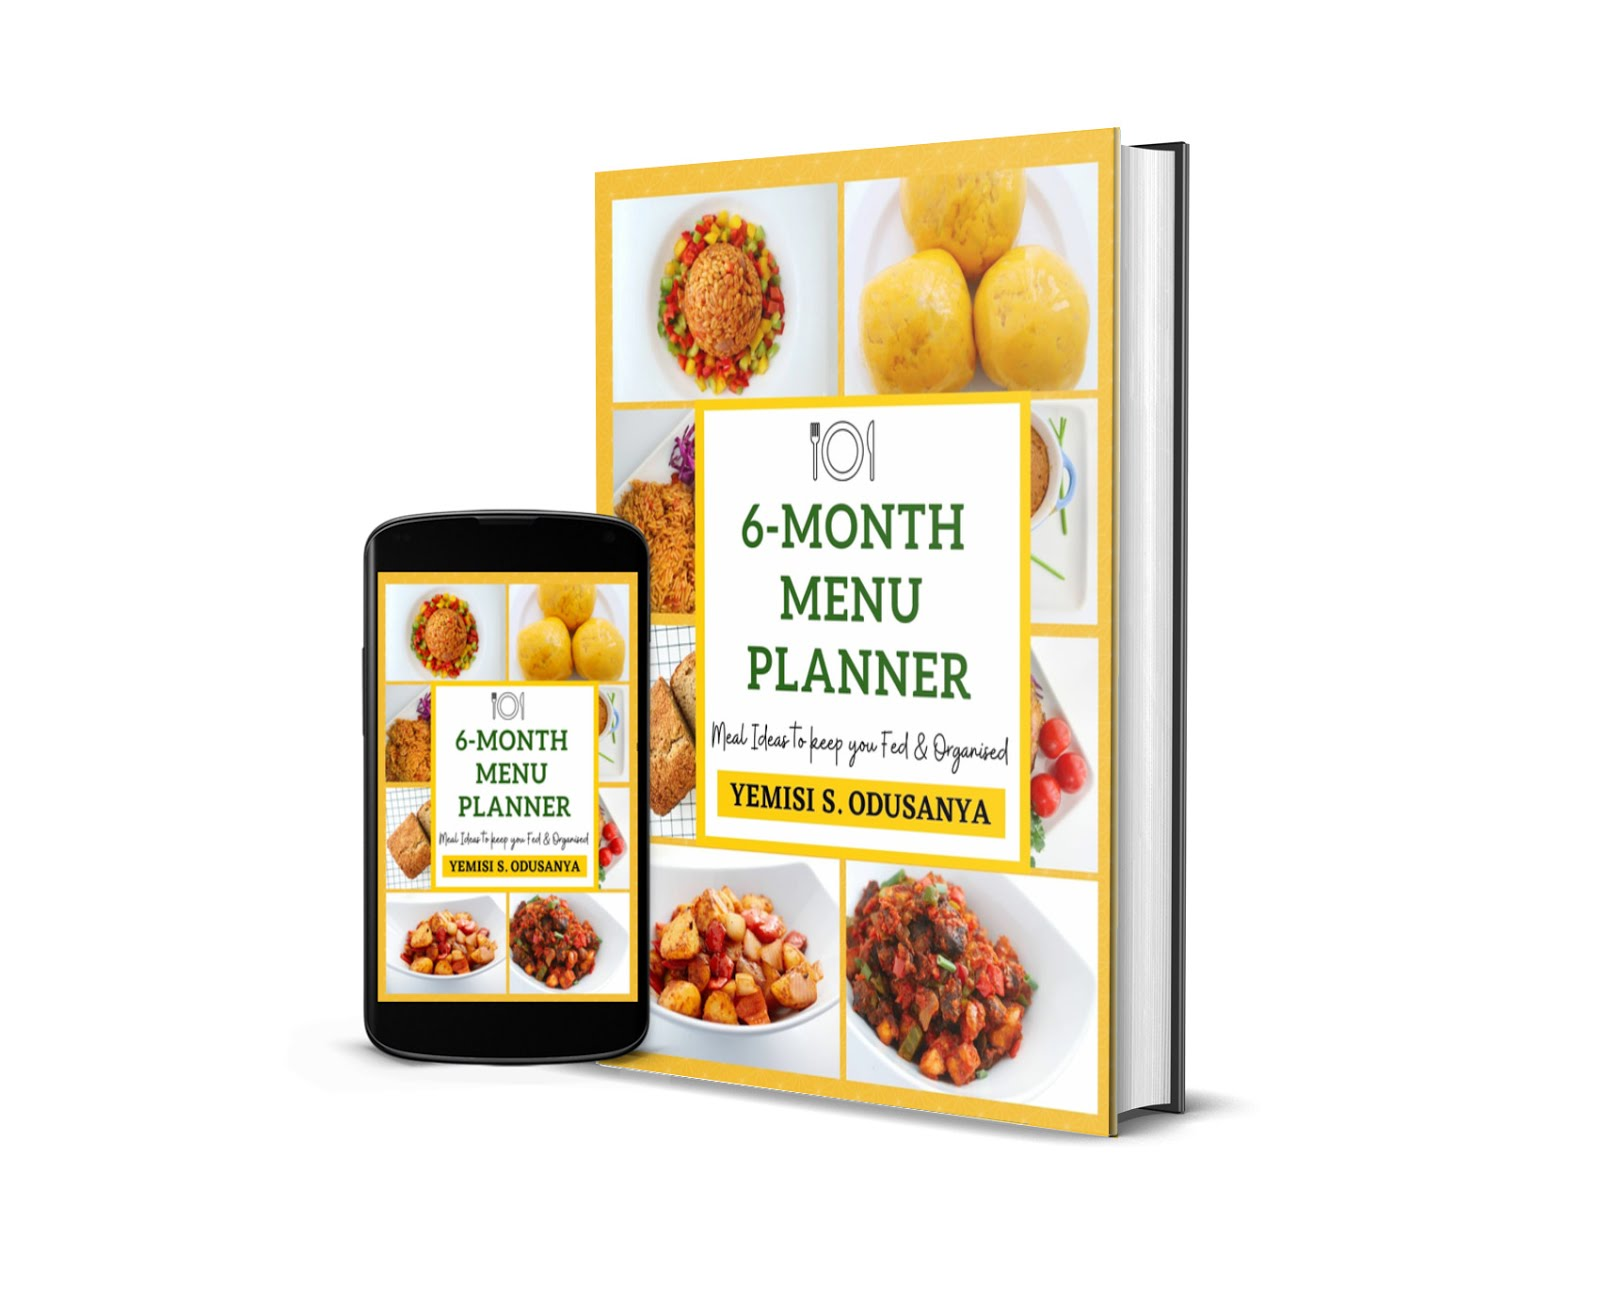 GET MY 6 MONTH MENU PLANNER